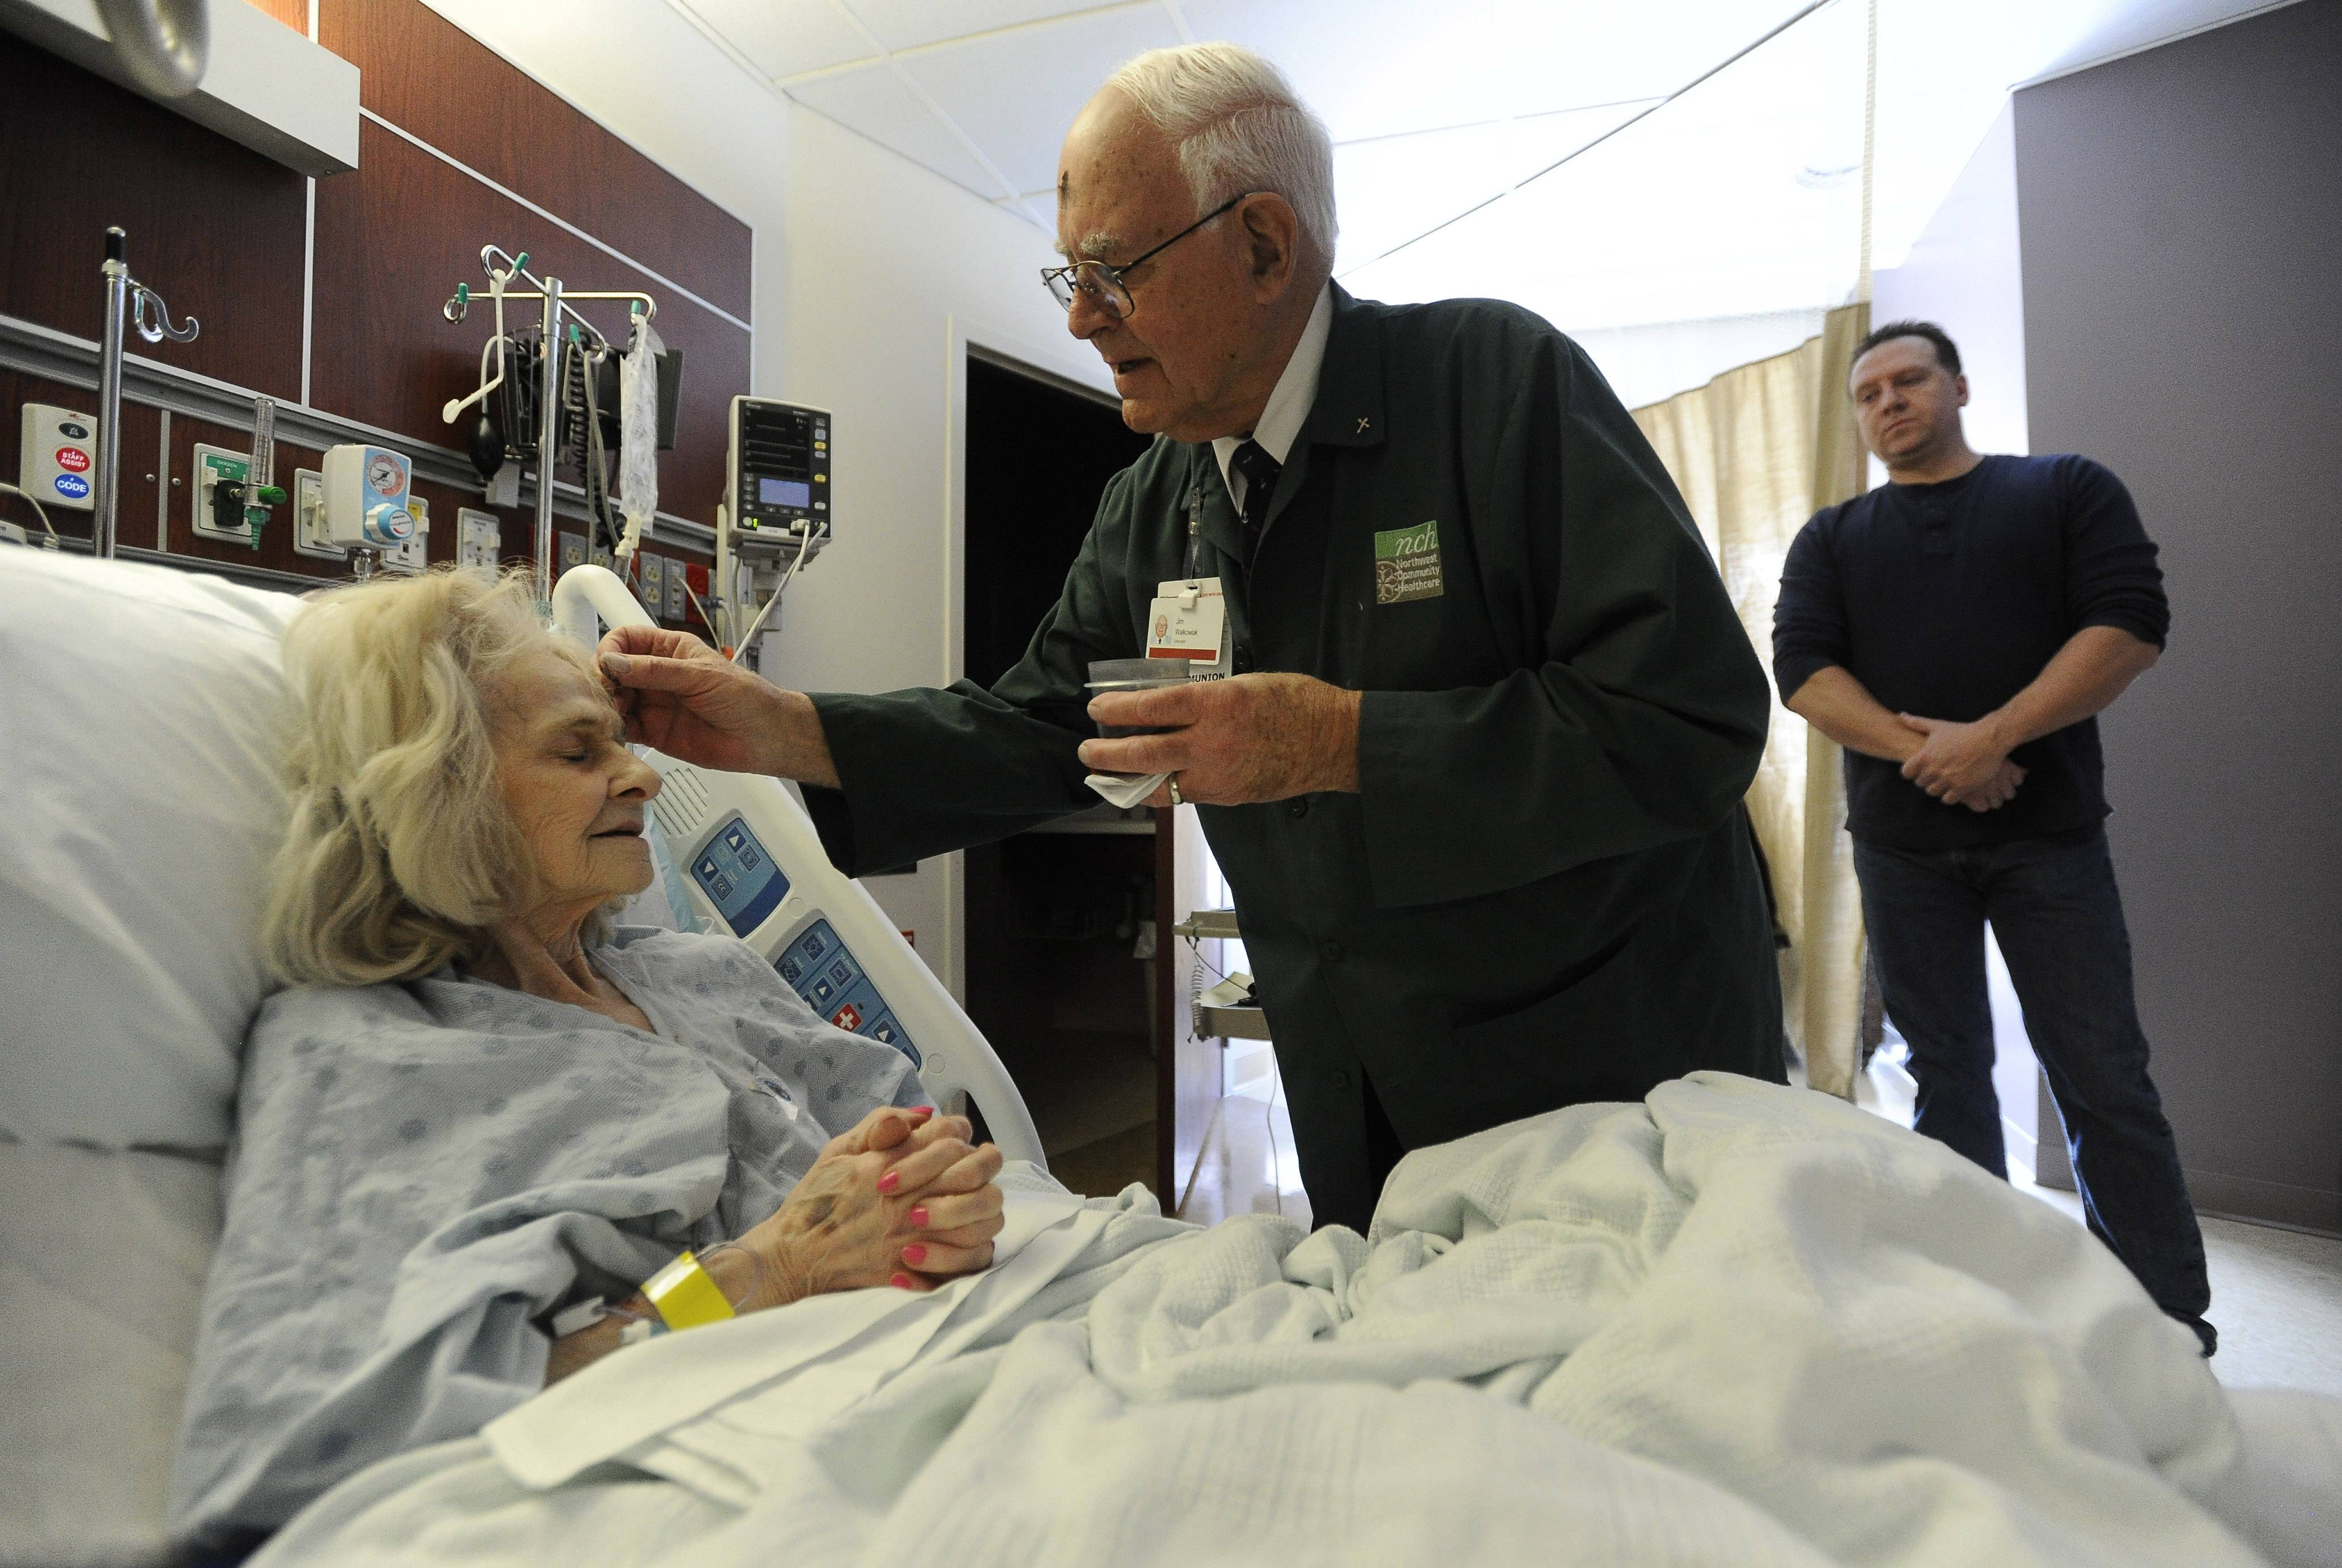 Eucharistic minister Jim Walkowiak from St. Raymond's Church of Mt. Prospect places ashes on the forehead of Northwest Community Hospital patient Mildred Leon of Arlington Heights as her nephew Don Ruzecki of Wheeling looks on.